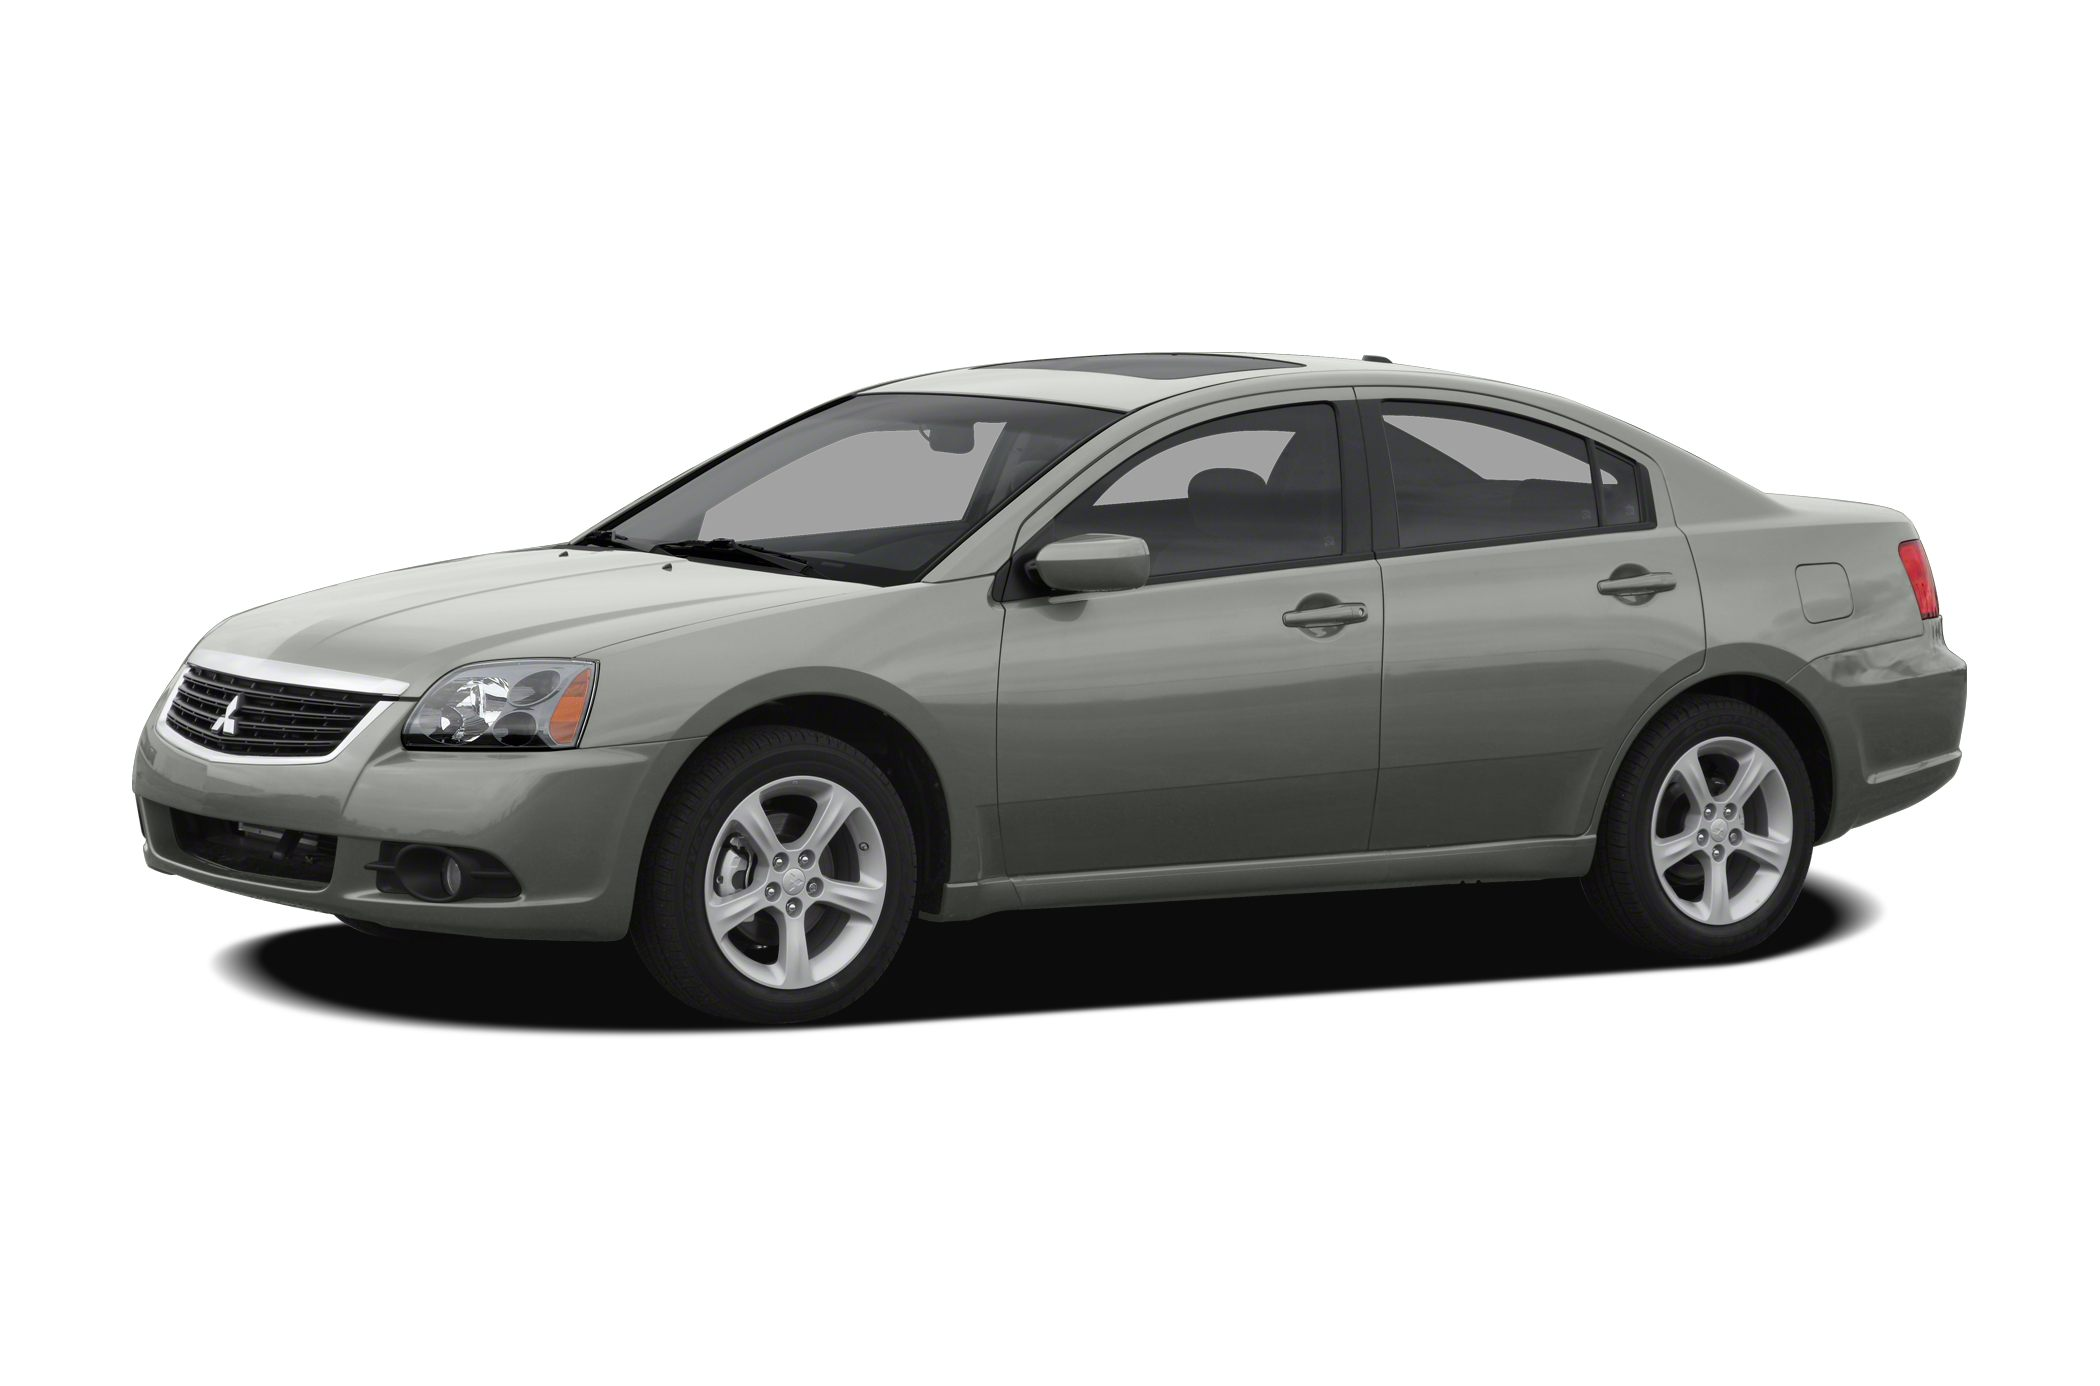 2012 Mitsubishi Galant ES Sedan for sale in Los Angeles for $9,800 with 62,984 miles